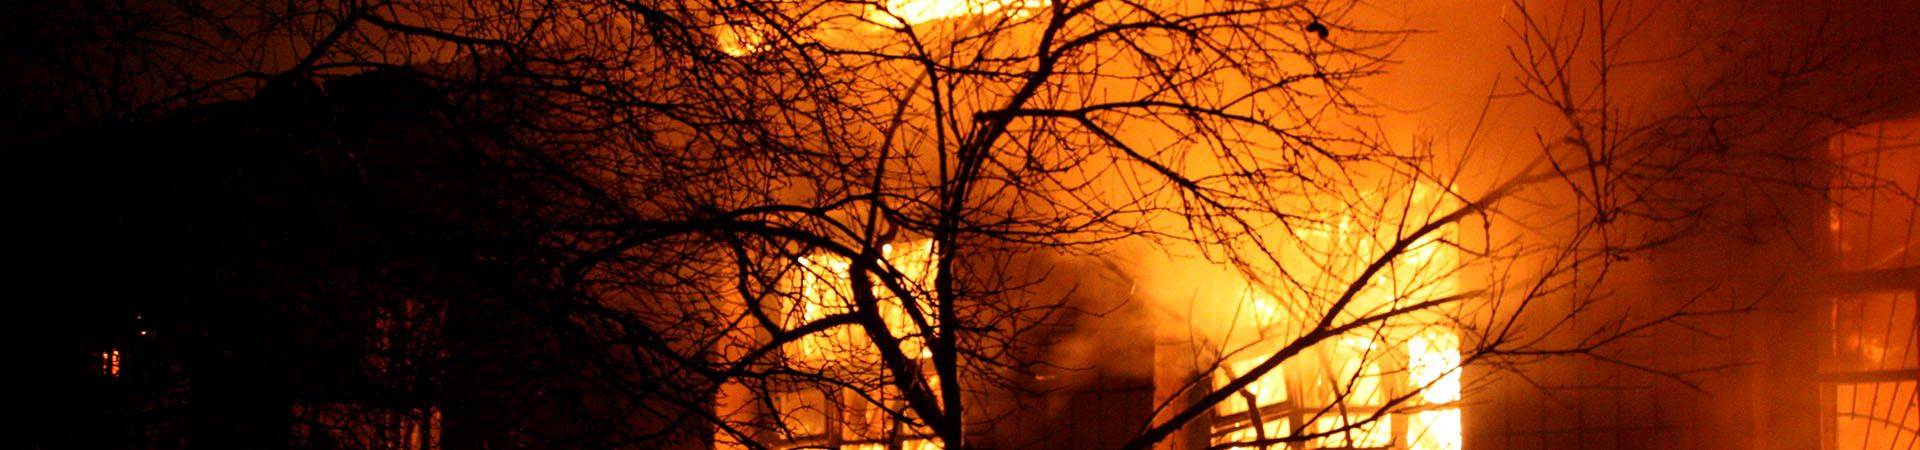 Fire Damage Restoration in Chicago, Evanston IL, Morton Grove, Skokie